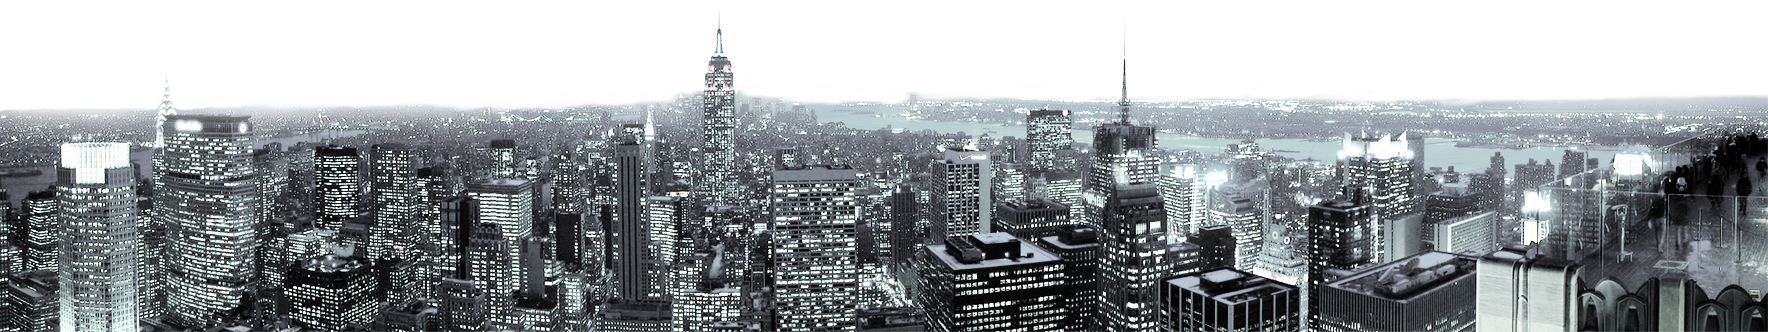 City background png. Images in collection page